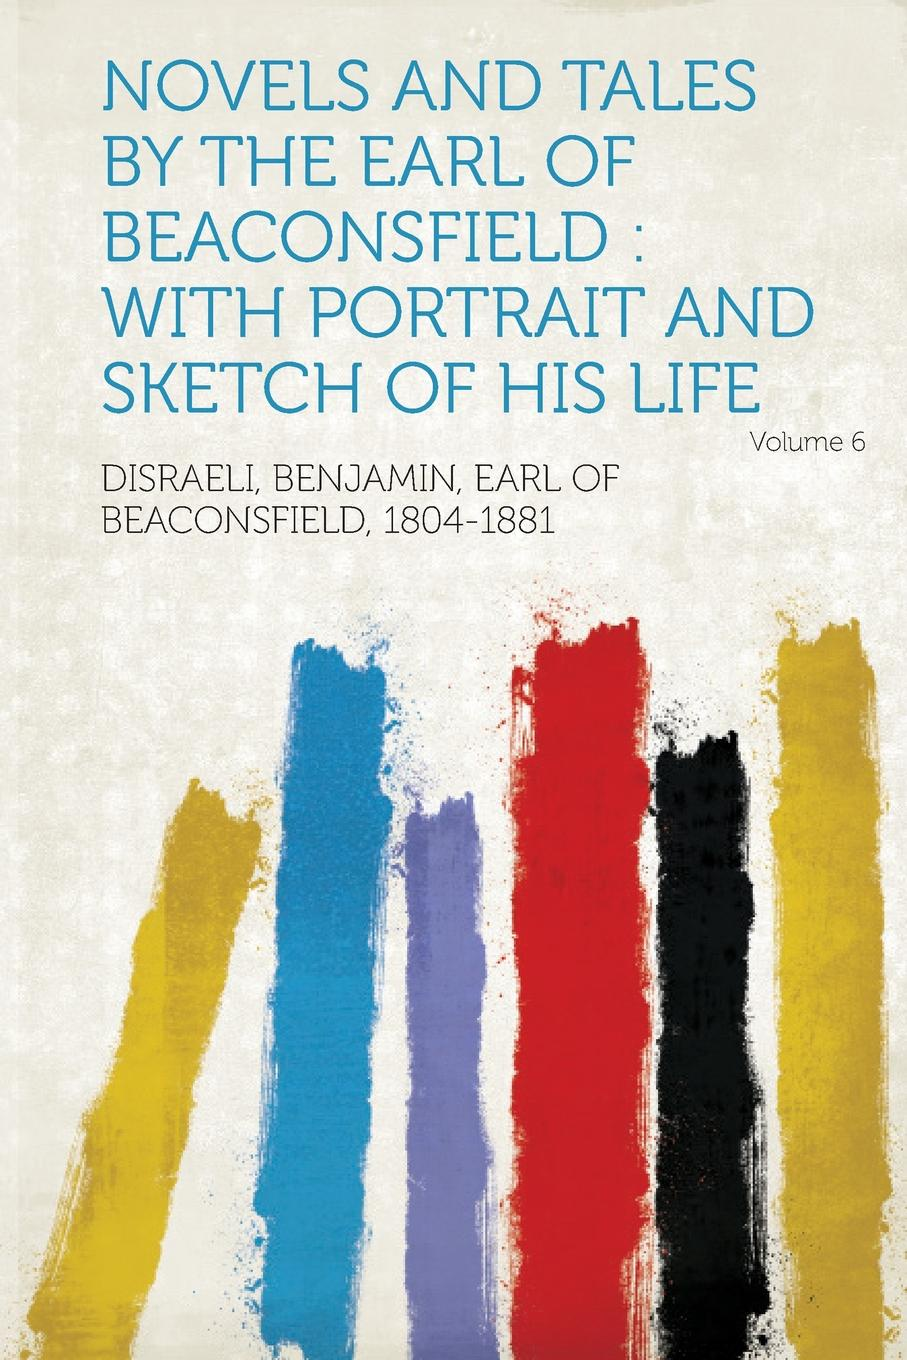 Novels and Tales by the Earl of Beaconsfield. With Portrait and Sketch of His Life Volume 6